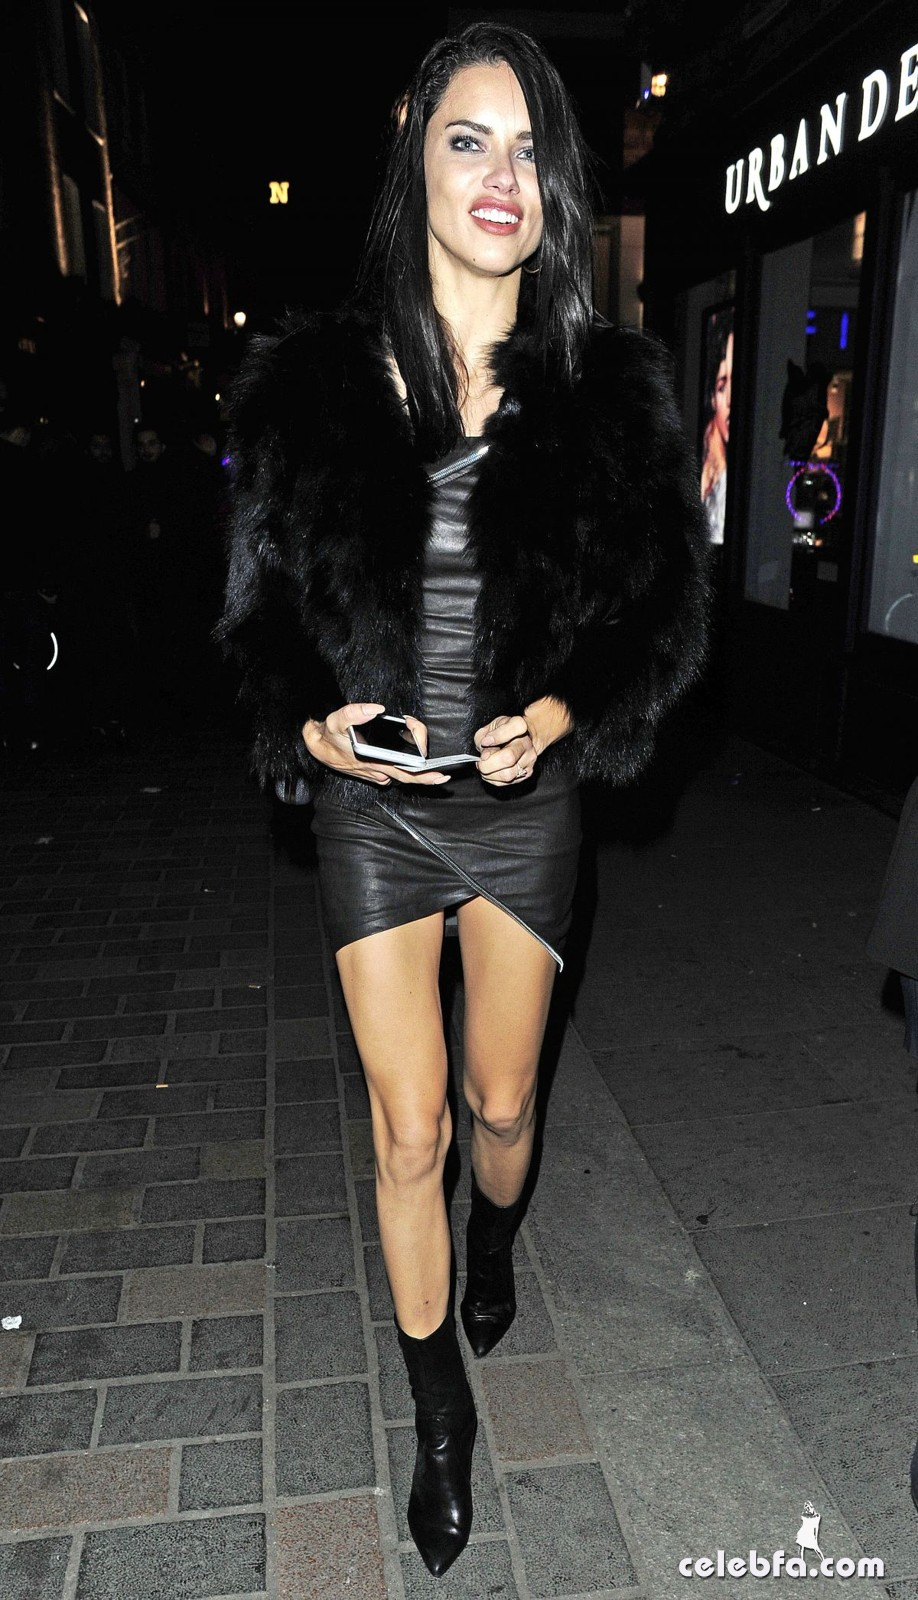 adriana-lima-night-out-in-london-5